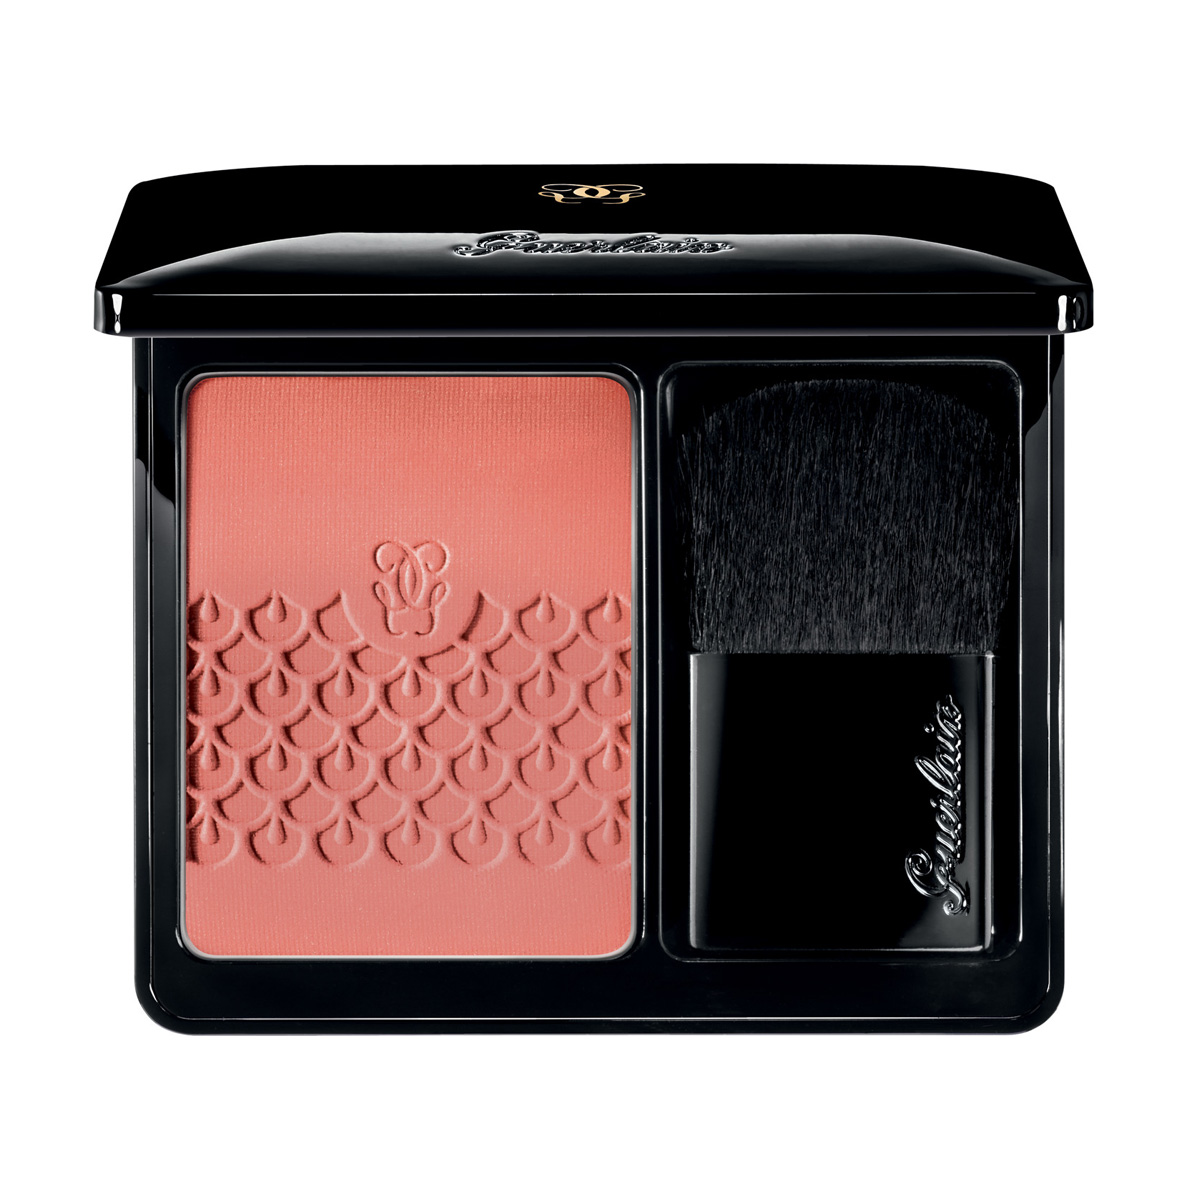 Givenchy  Rose aux joues  fard 03 peach party